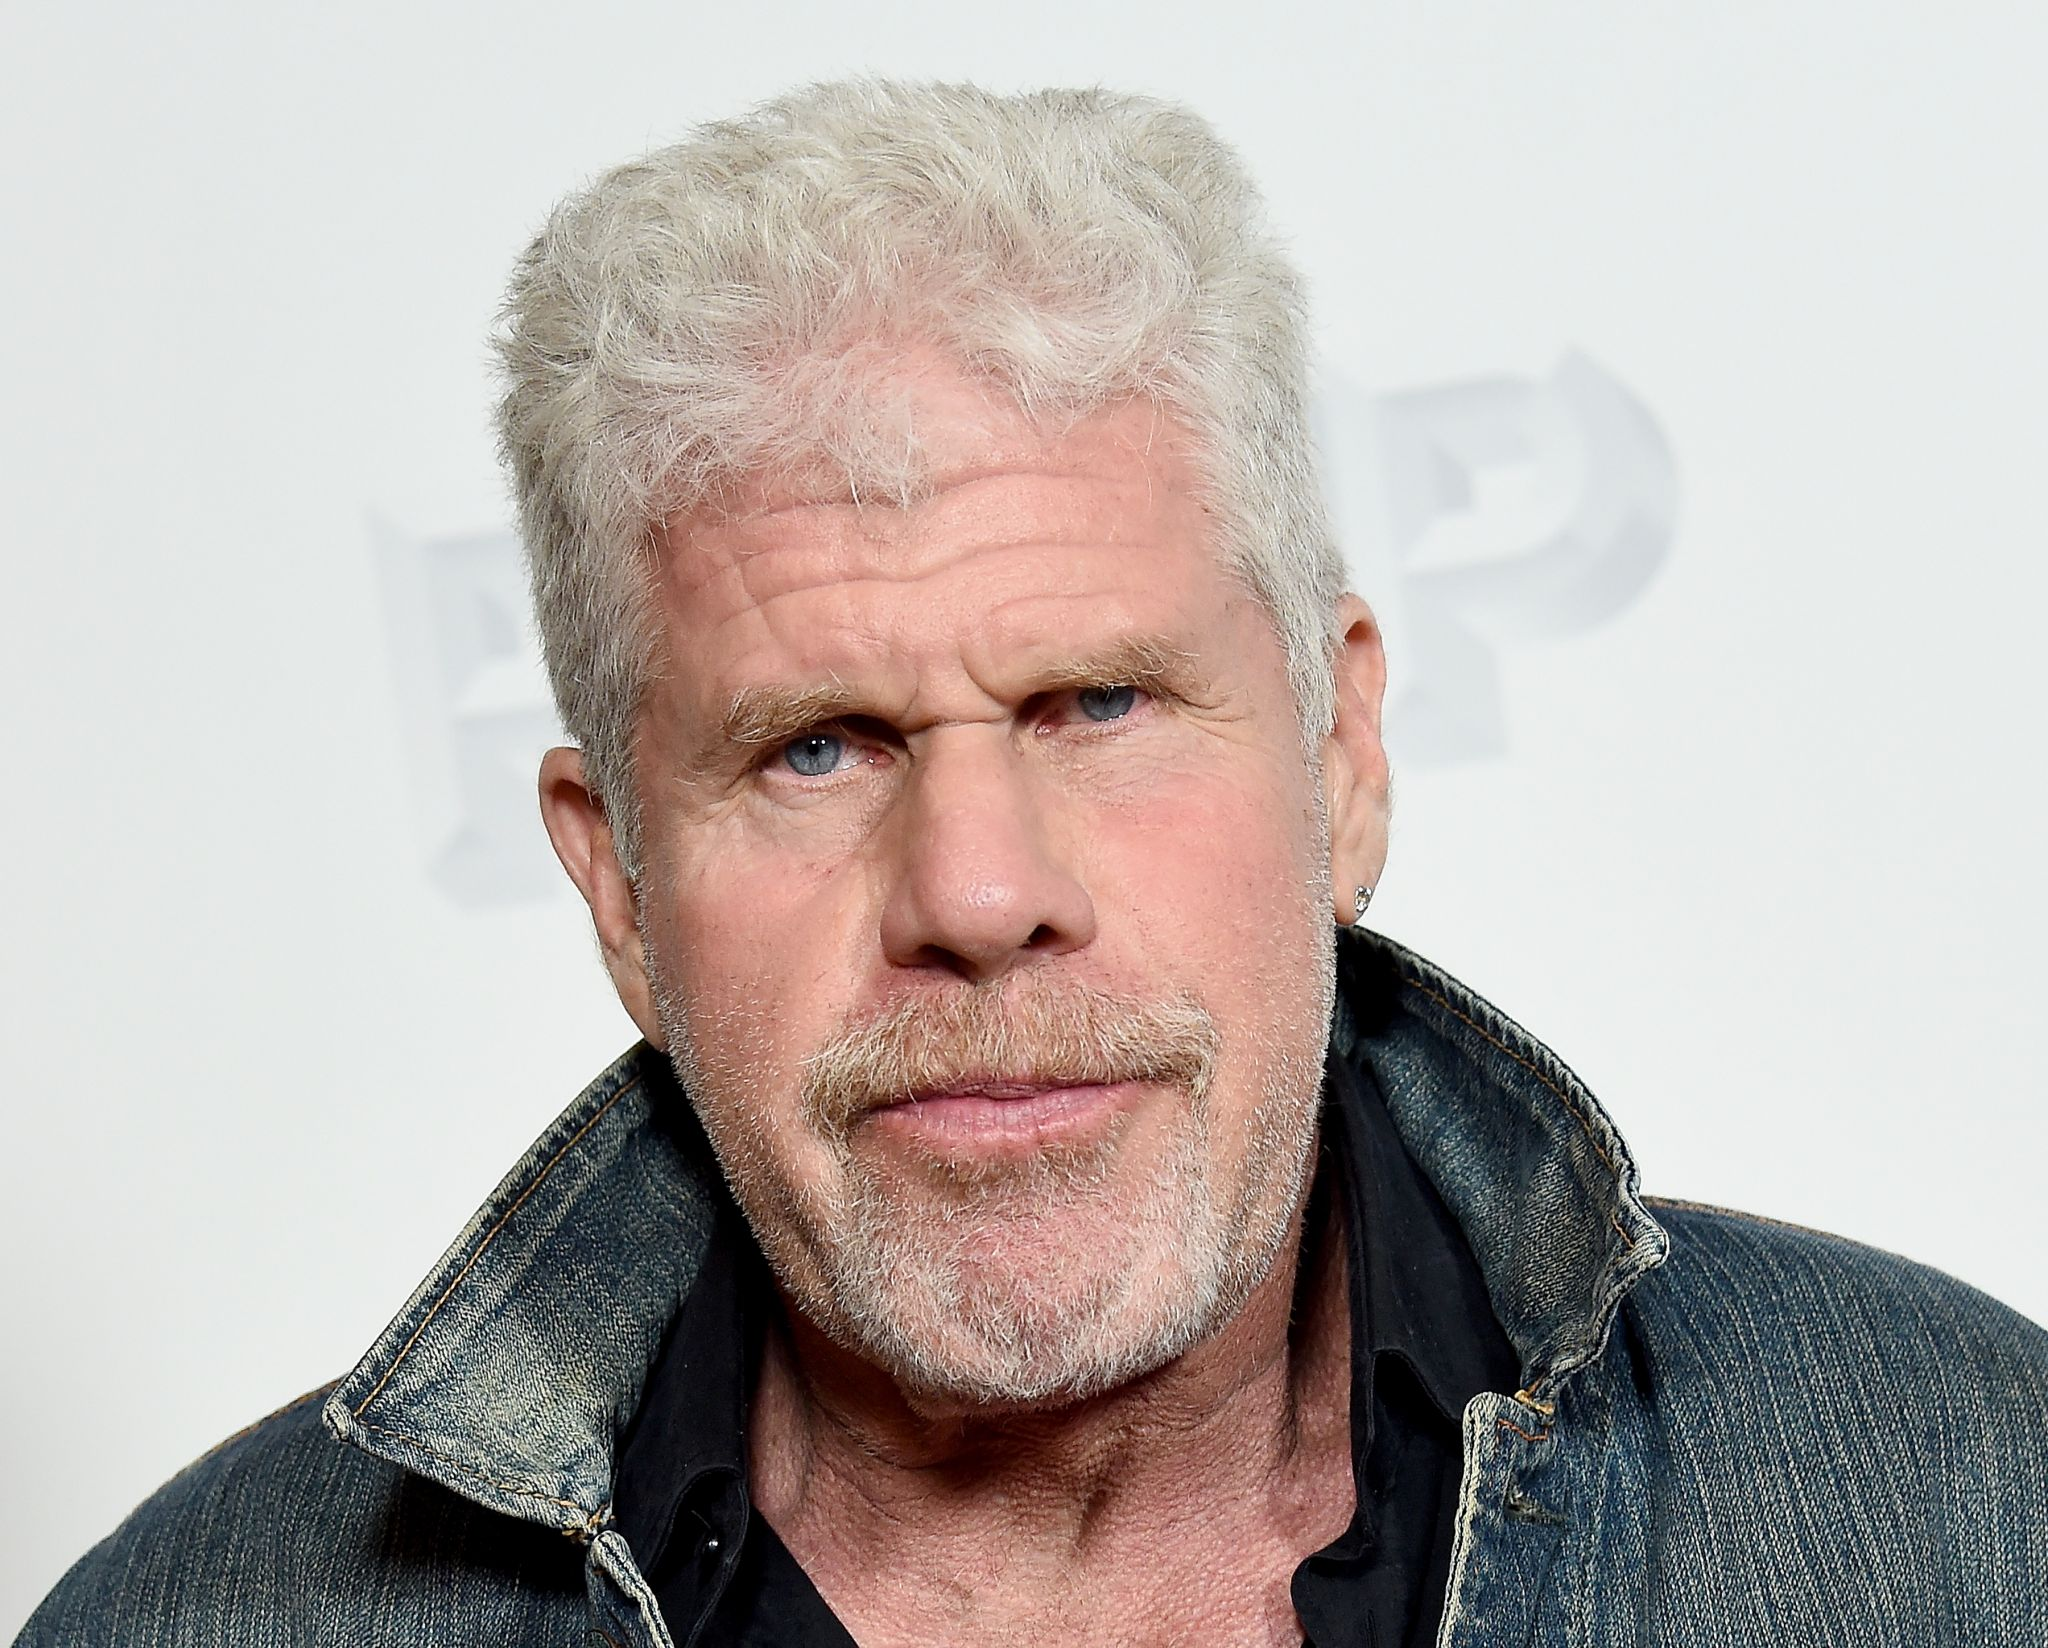 Big Texas Comicon brings original 'Hellboy' Ron Perlman, more celebs to San Antonio this fall